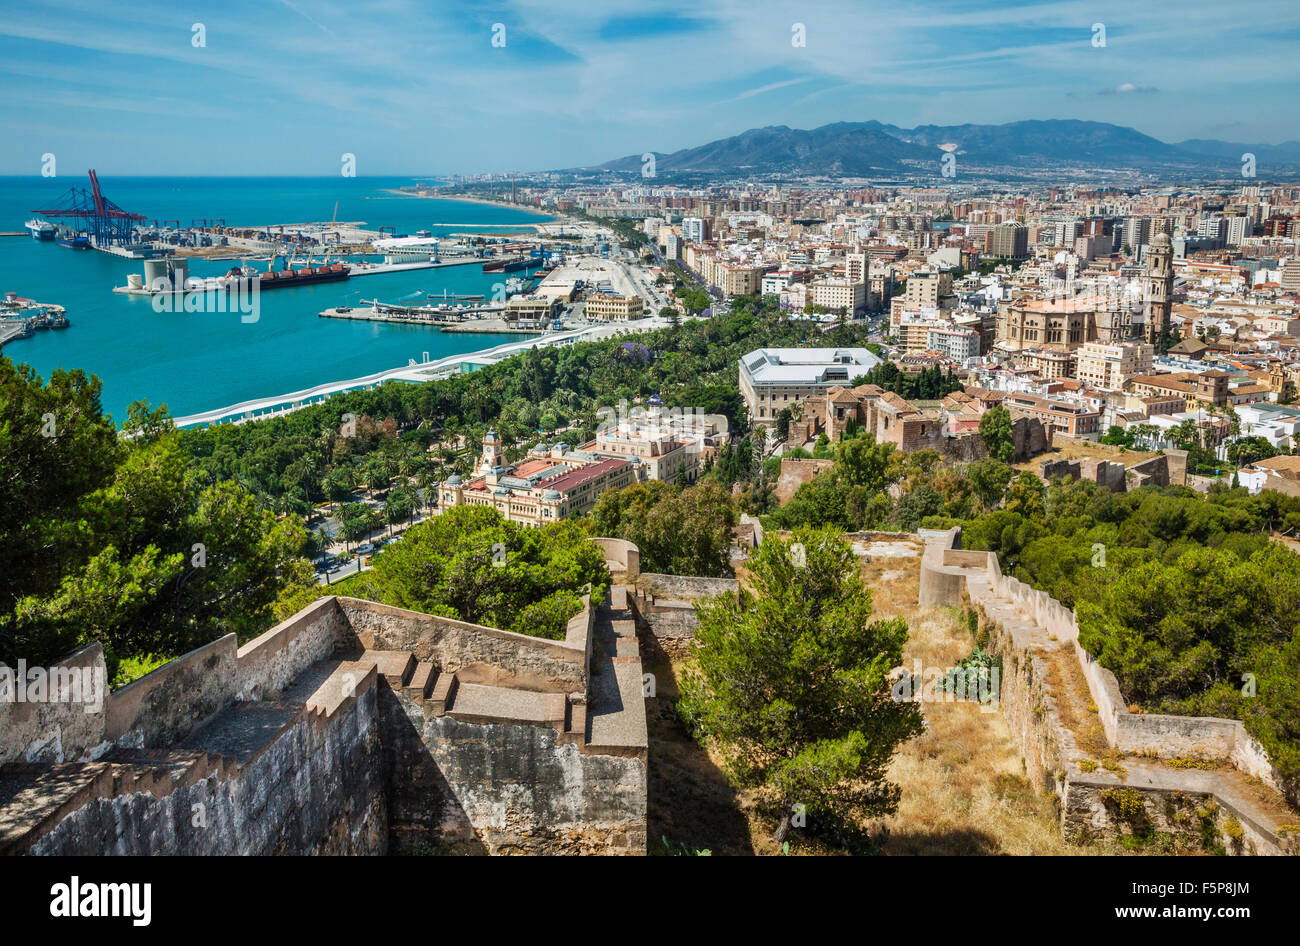 view of Malaga from Gibralfaro with Alcazaba, the historic centre and Malaga cathedral and Port of Malaga - Stock Image